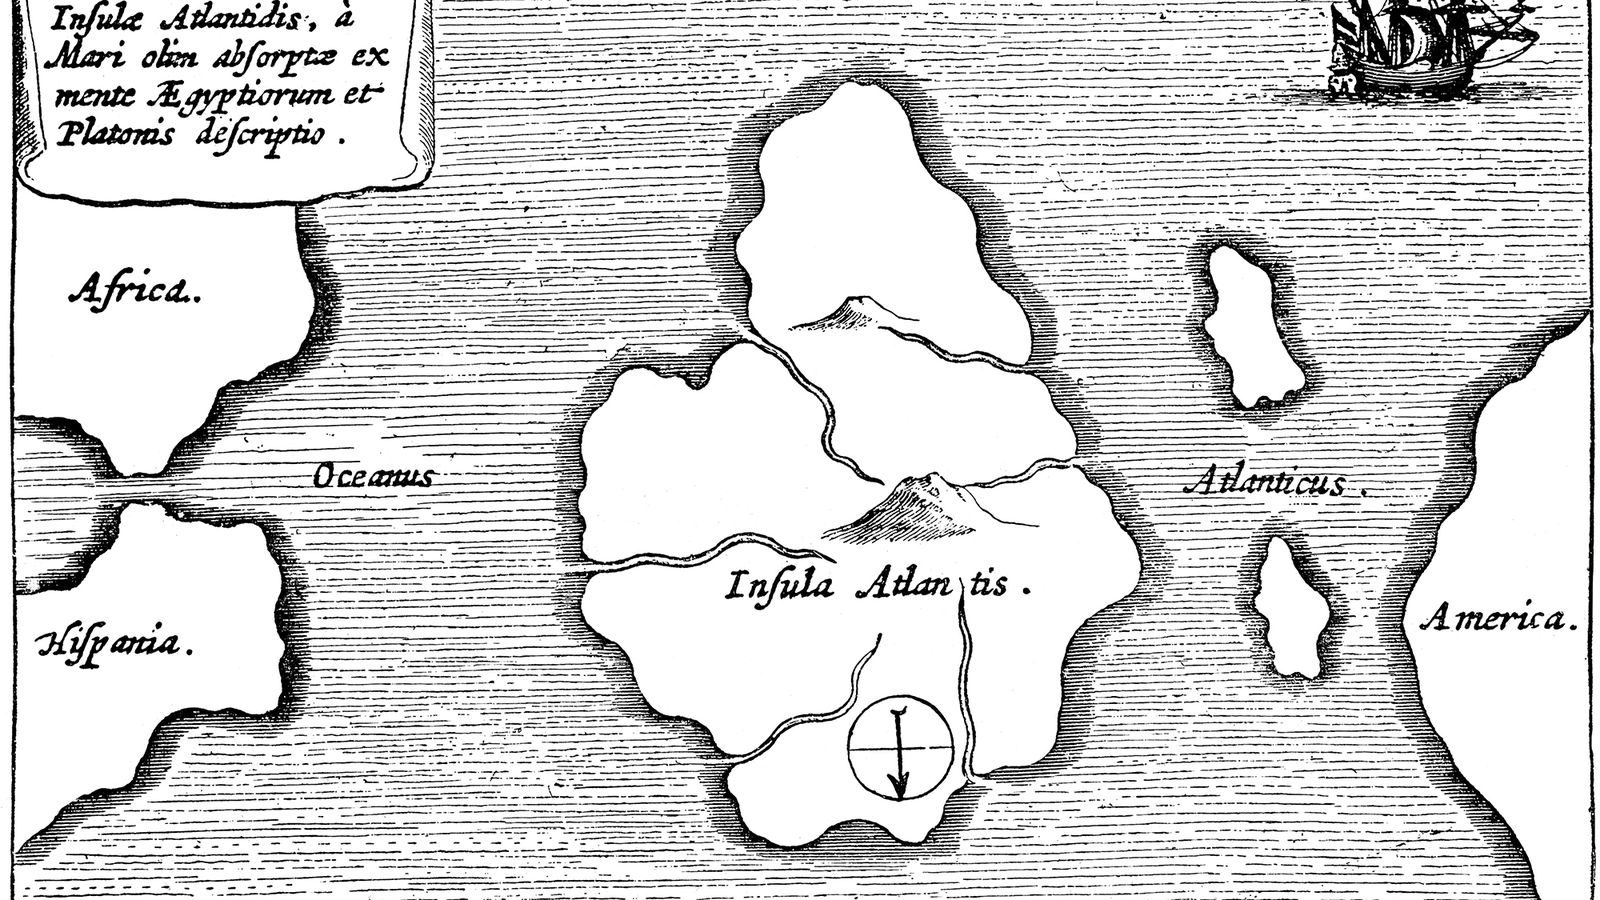 How The Imaginary Island Of Atlantis Was Mapped Vox